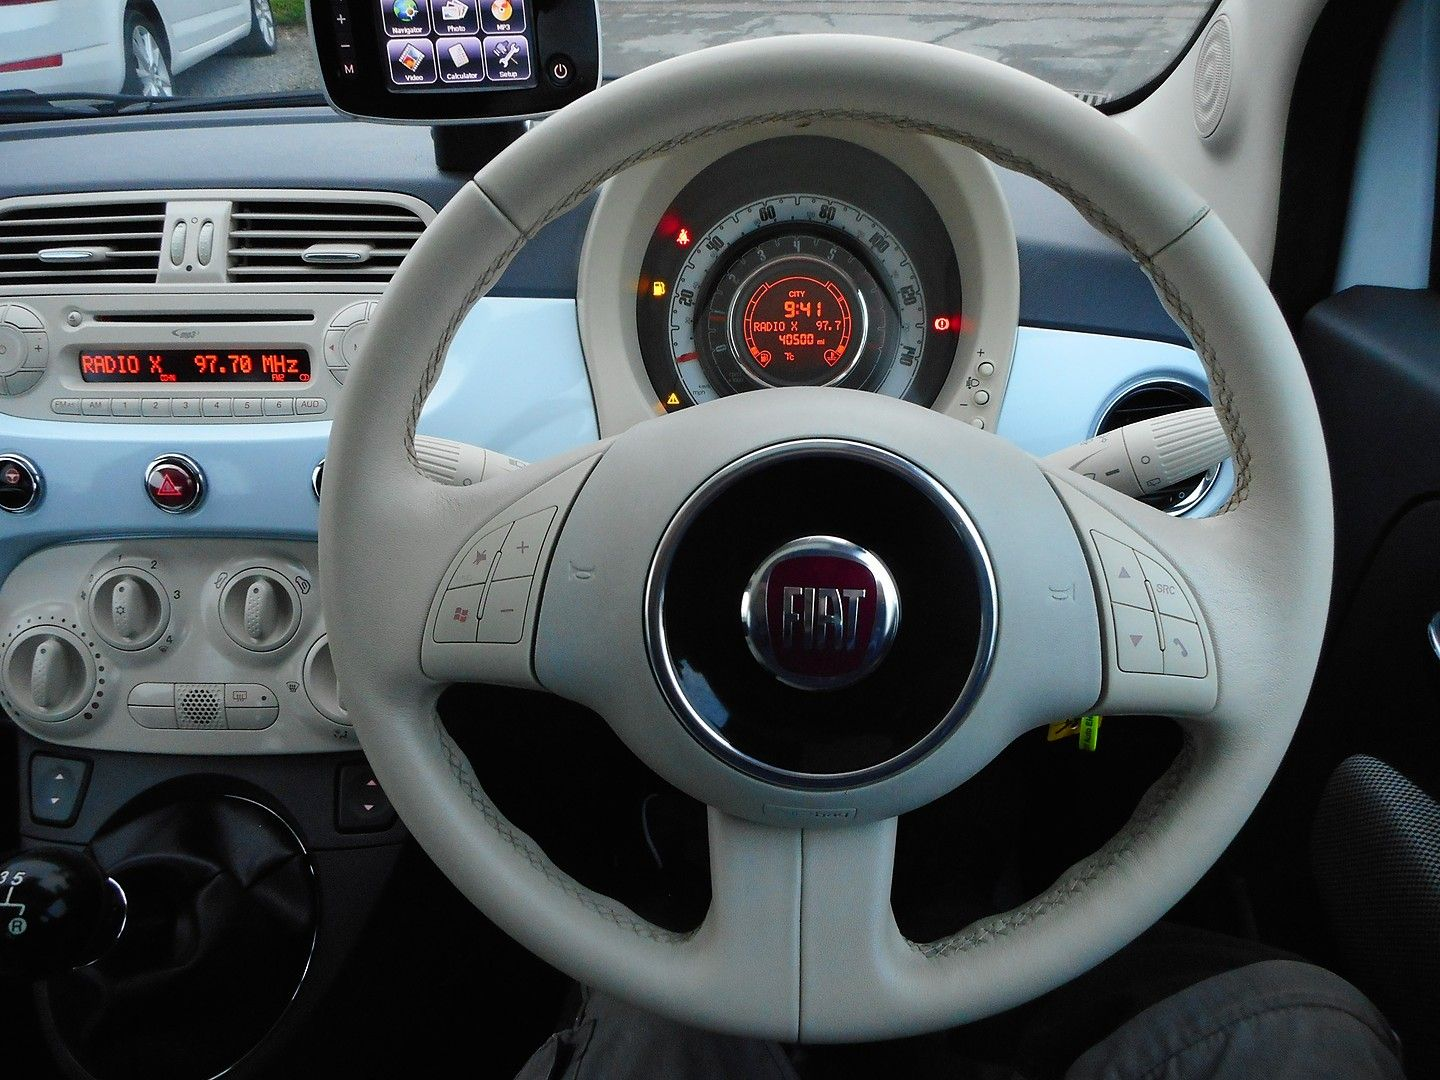 FIAT 500 1.2i Lounge (2010) - Picture 16